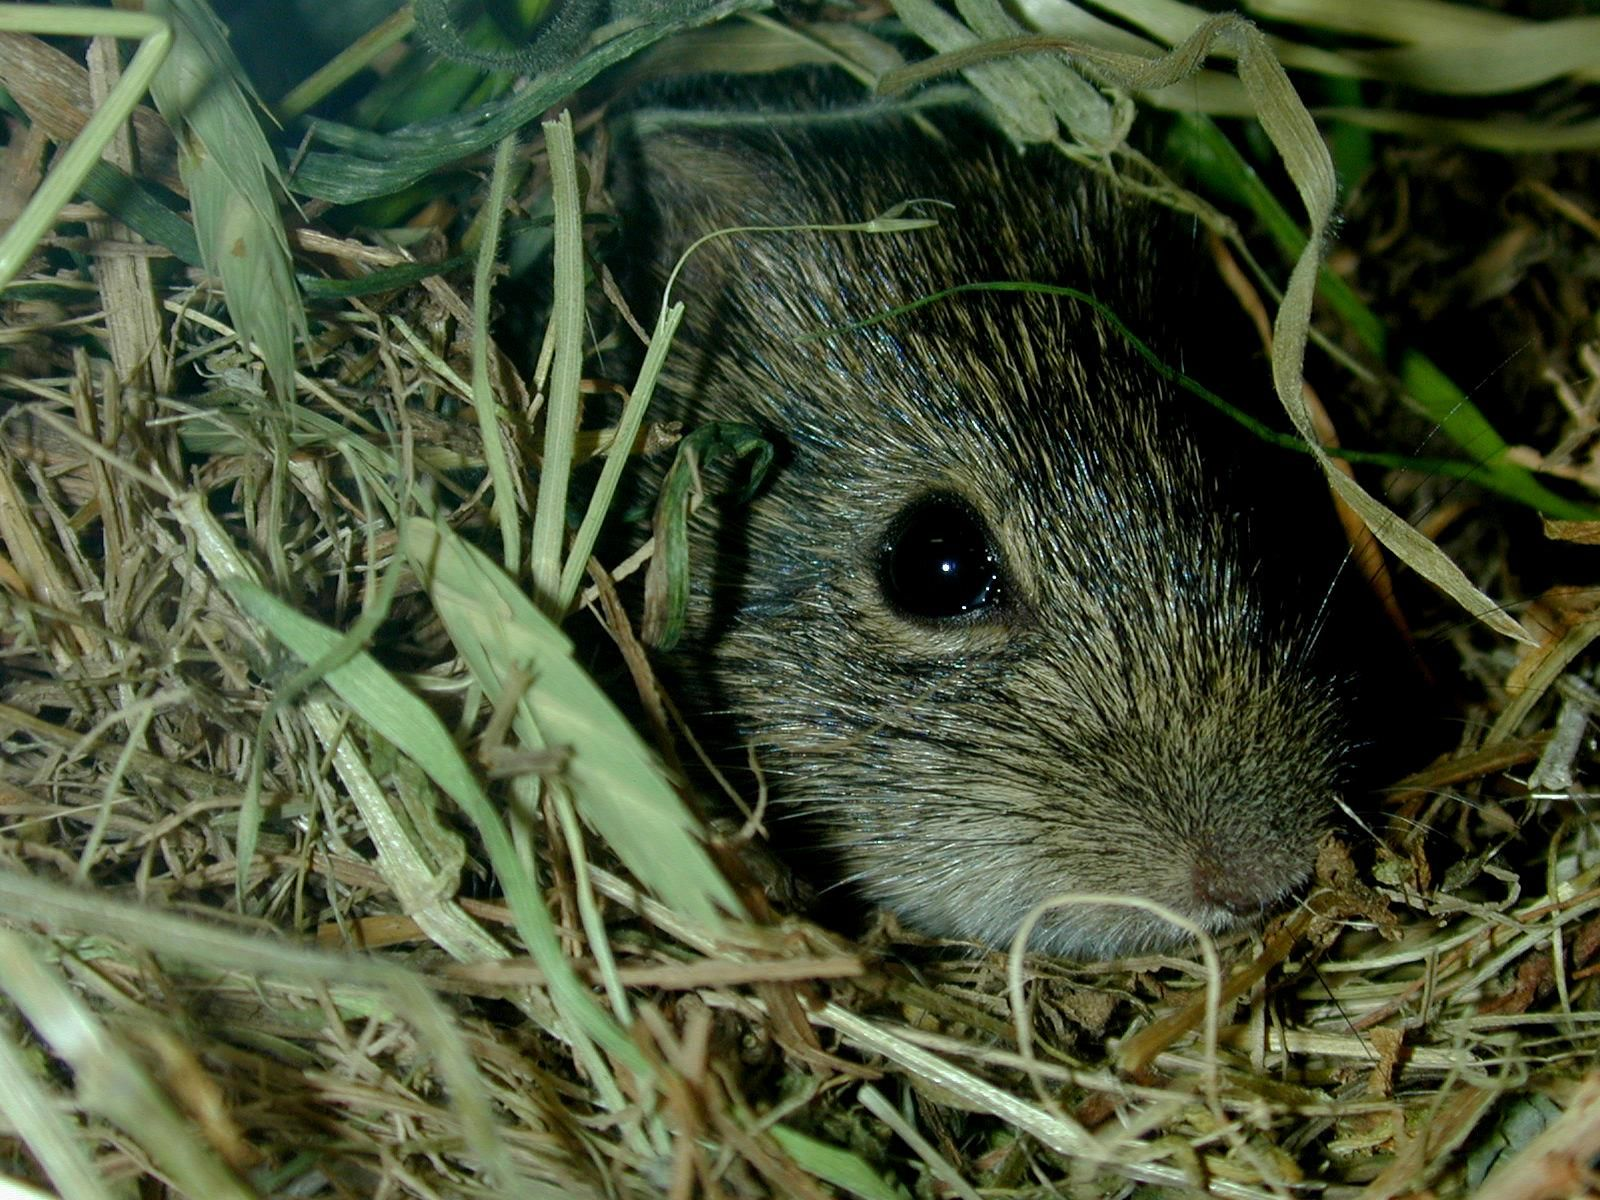 A Hispid Cotton Rat. These native Texas rats usually inhabit areas with tall grass where they dig underground burrows. They feed on plant materials.